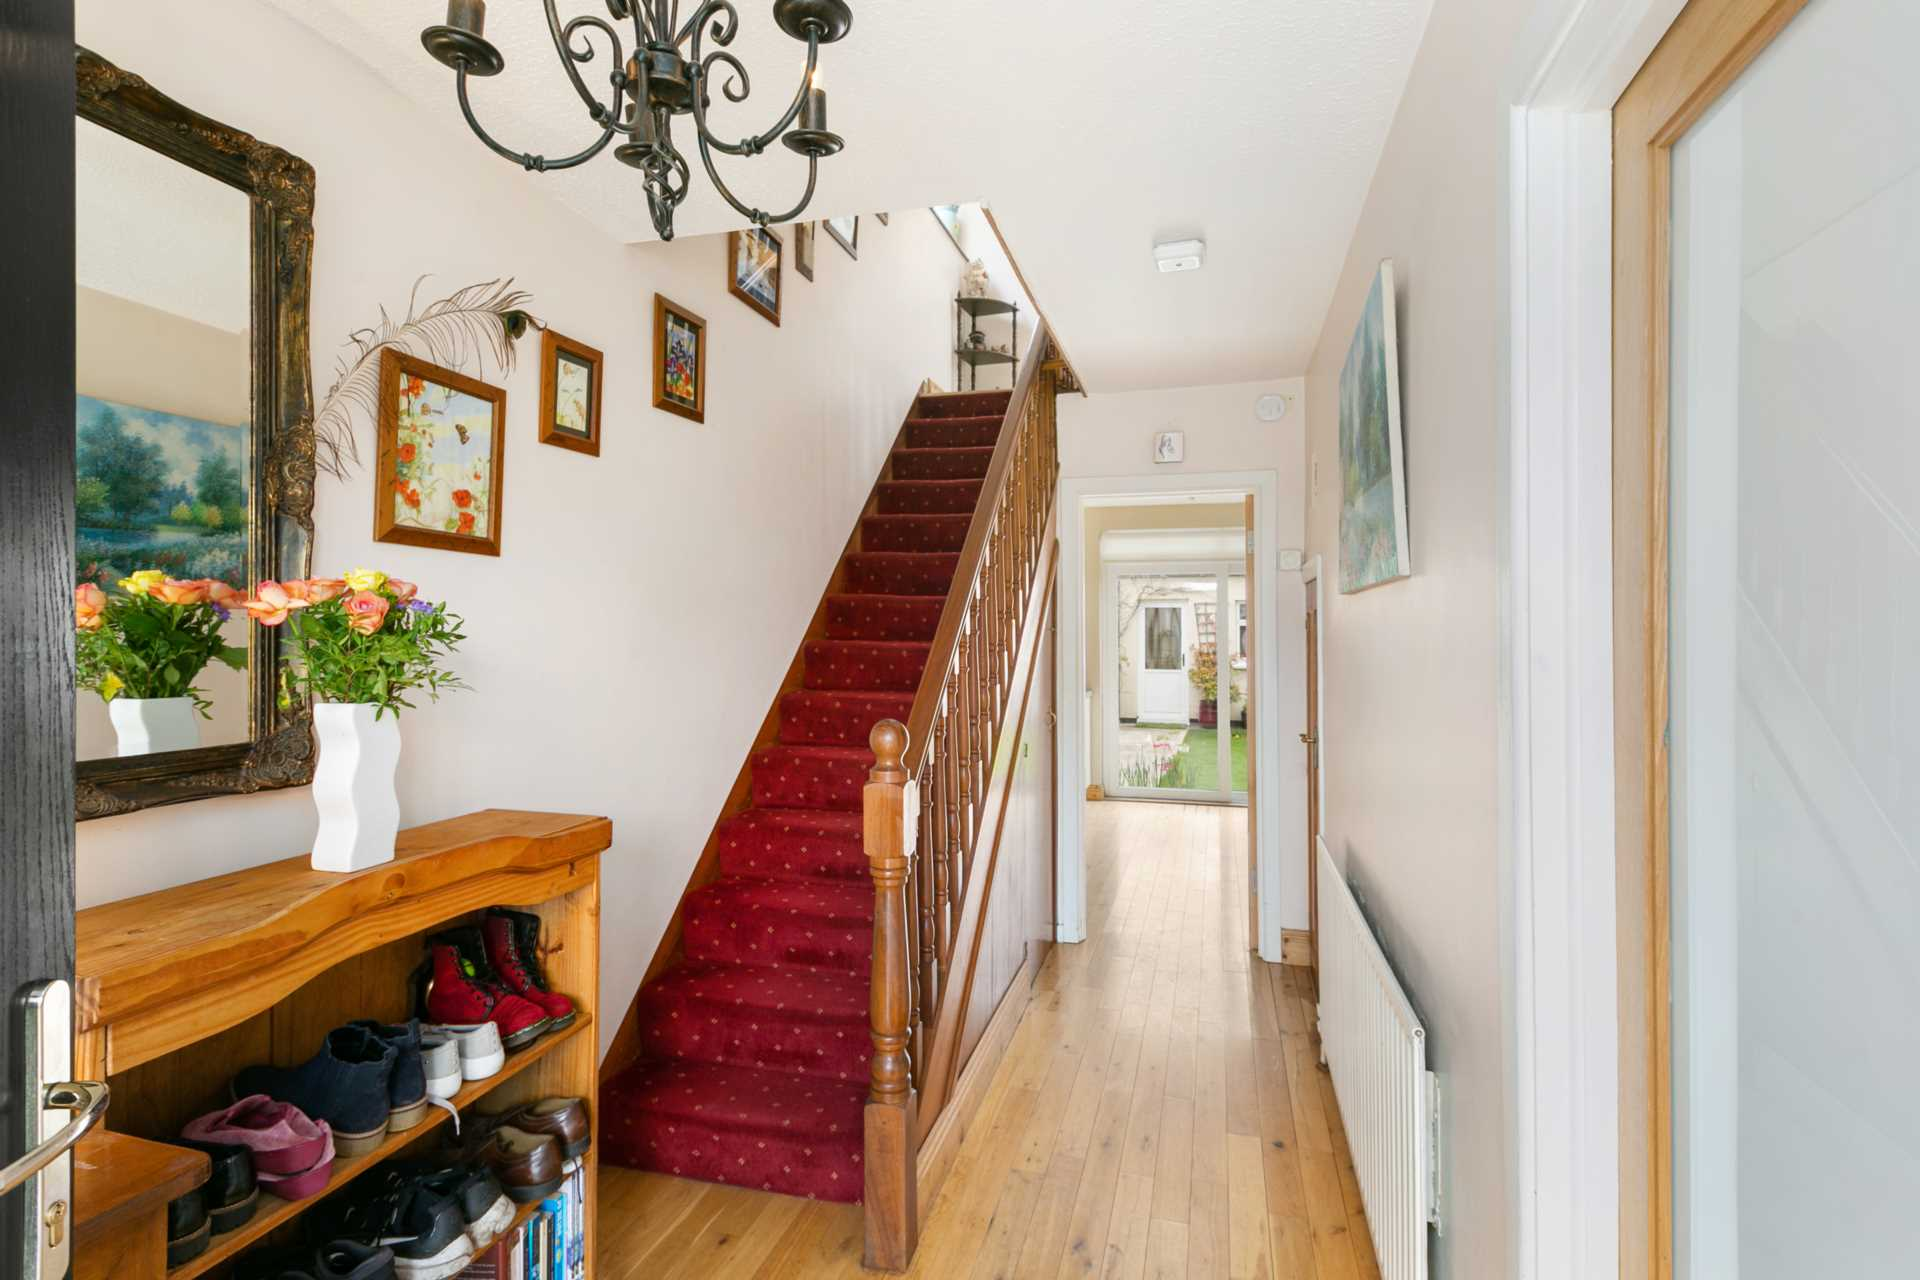 411 Orwell Park Drive, Templeogue, Dublin 6w, Image 2